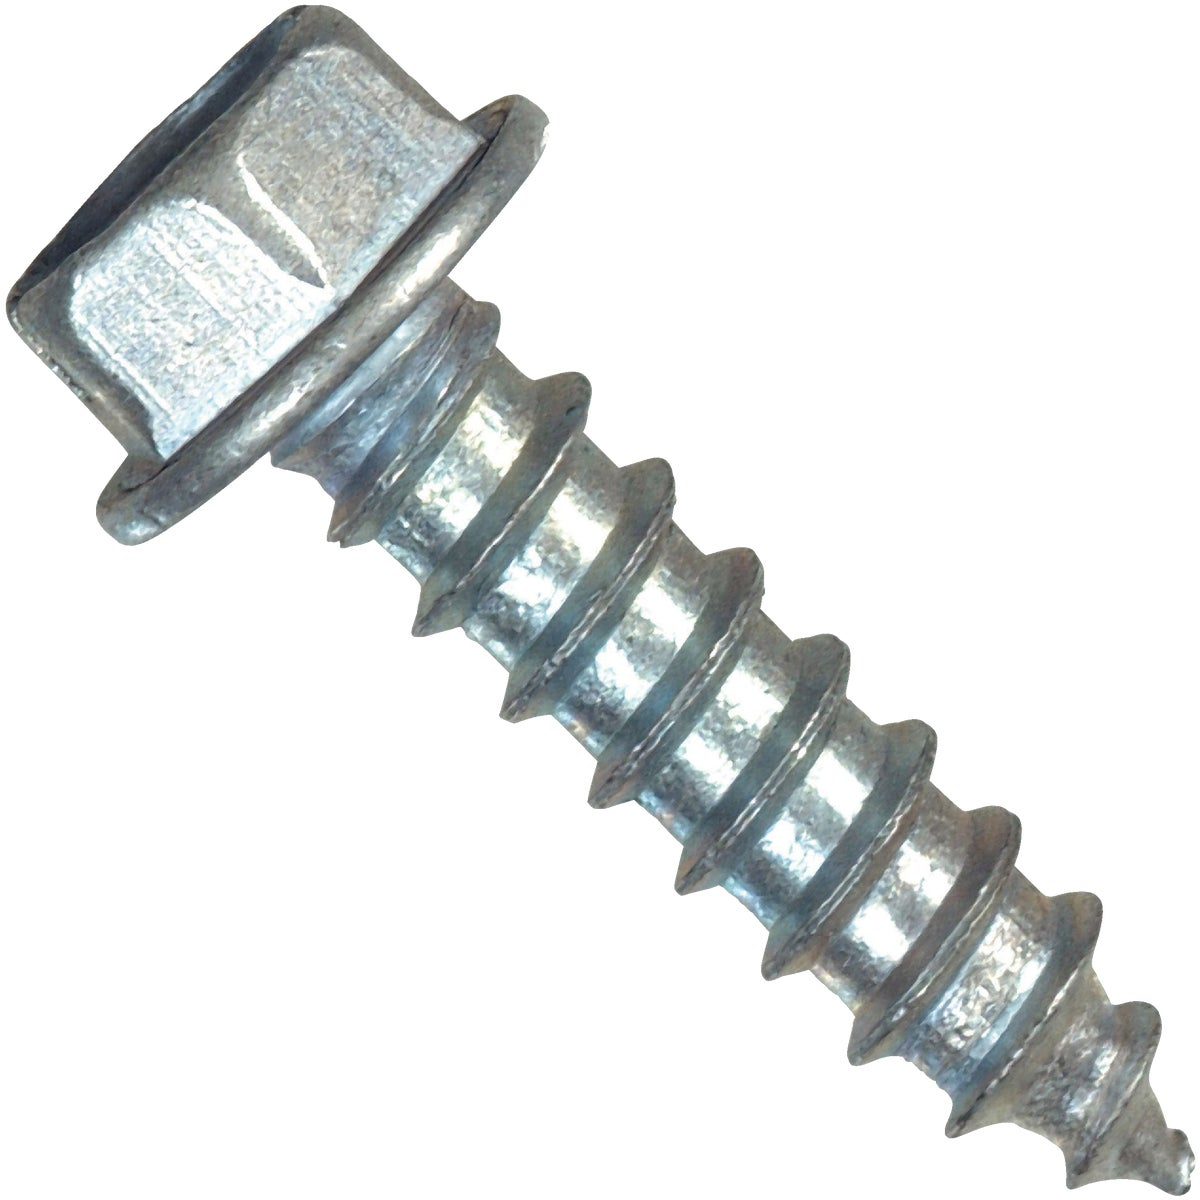 10X3/4 HWH SHT MTL SCREW - 70295 by Hillman Fastener